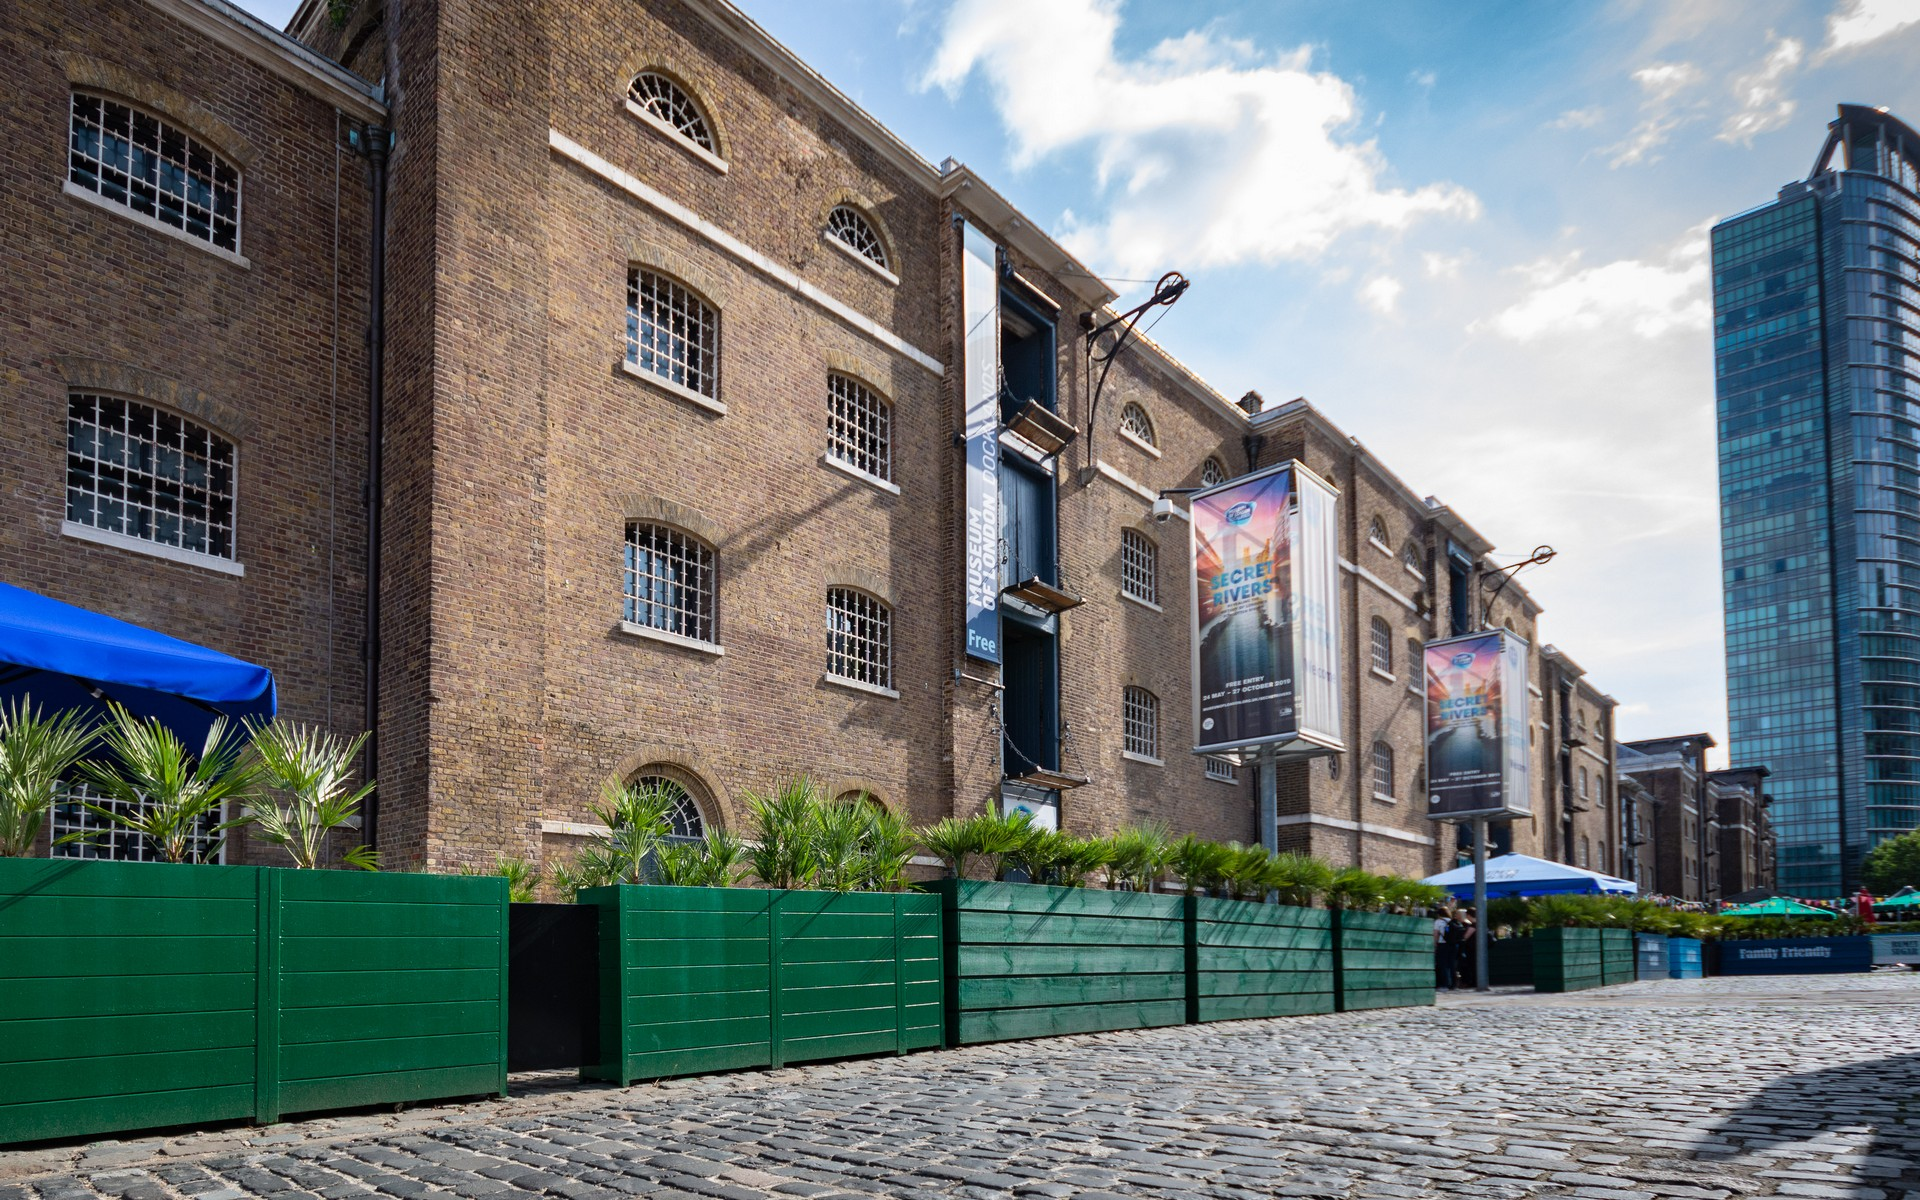 The Museum of London Docklands, Canary Wharf E14